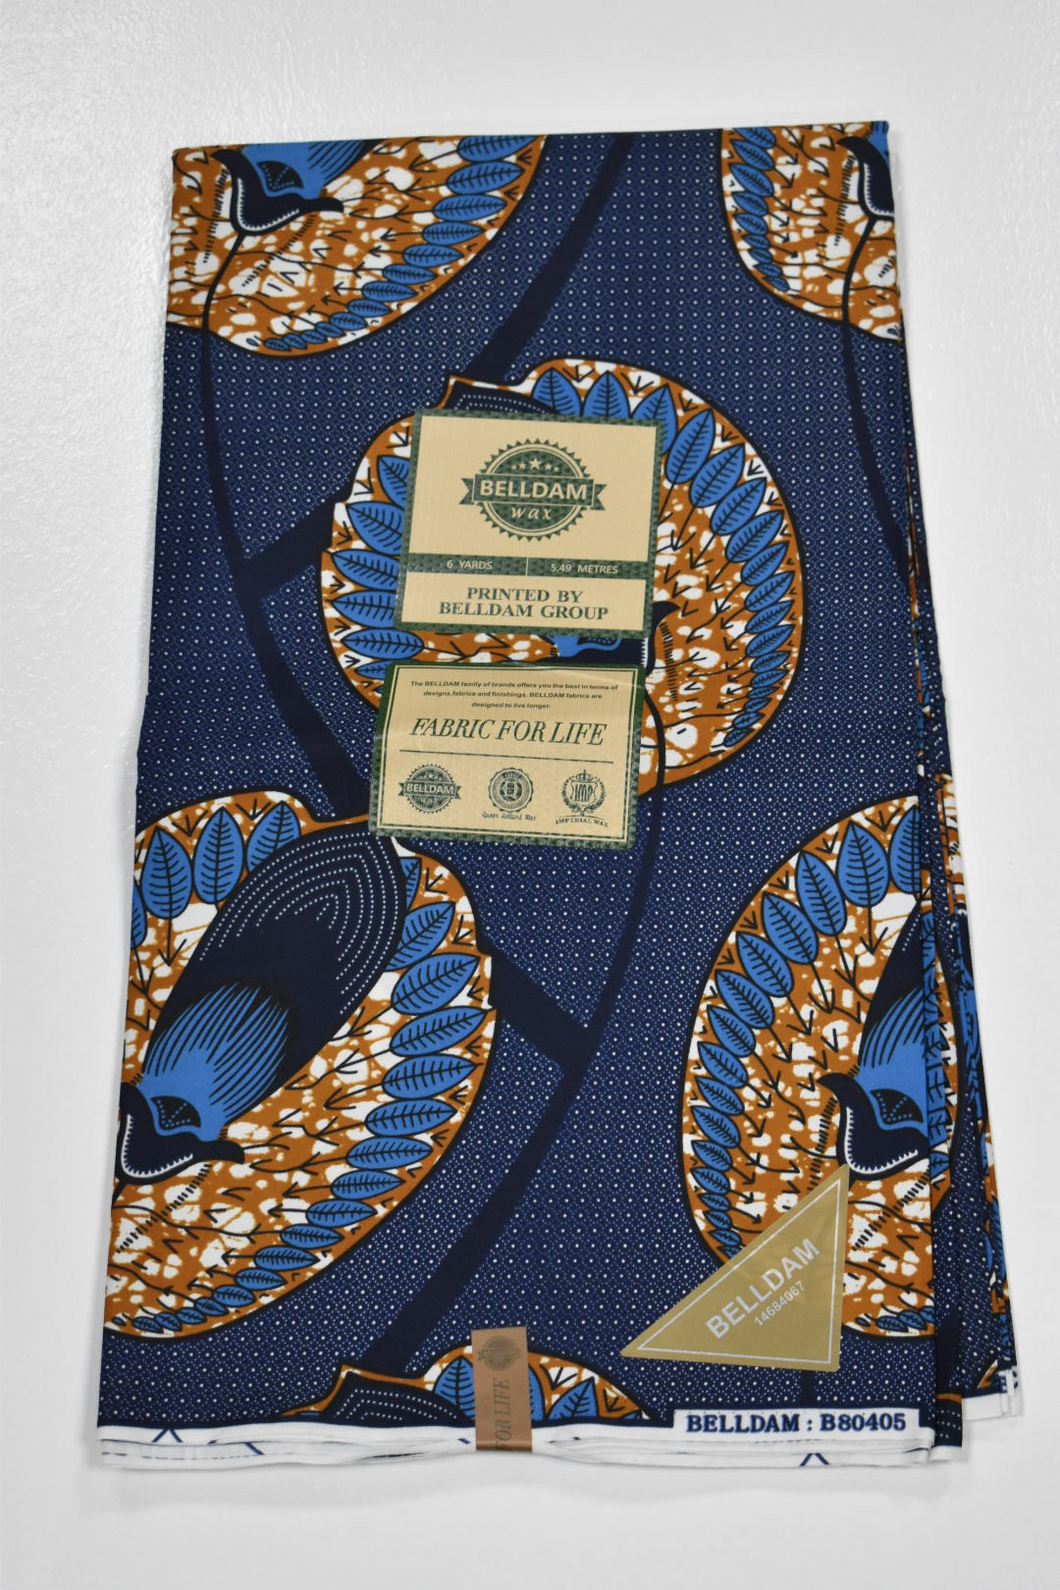 Royal Blue and Orange Ankara Print - 6 Yards